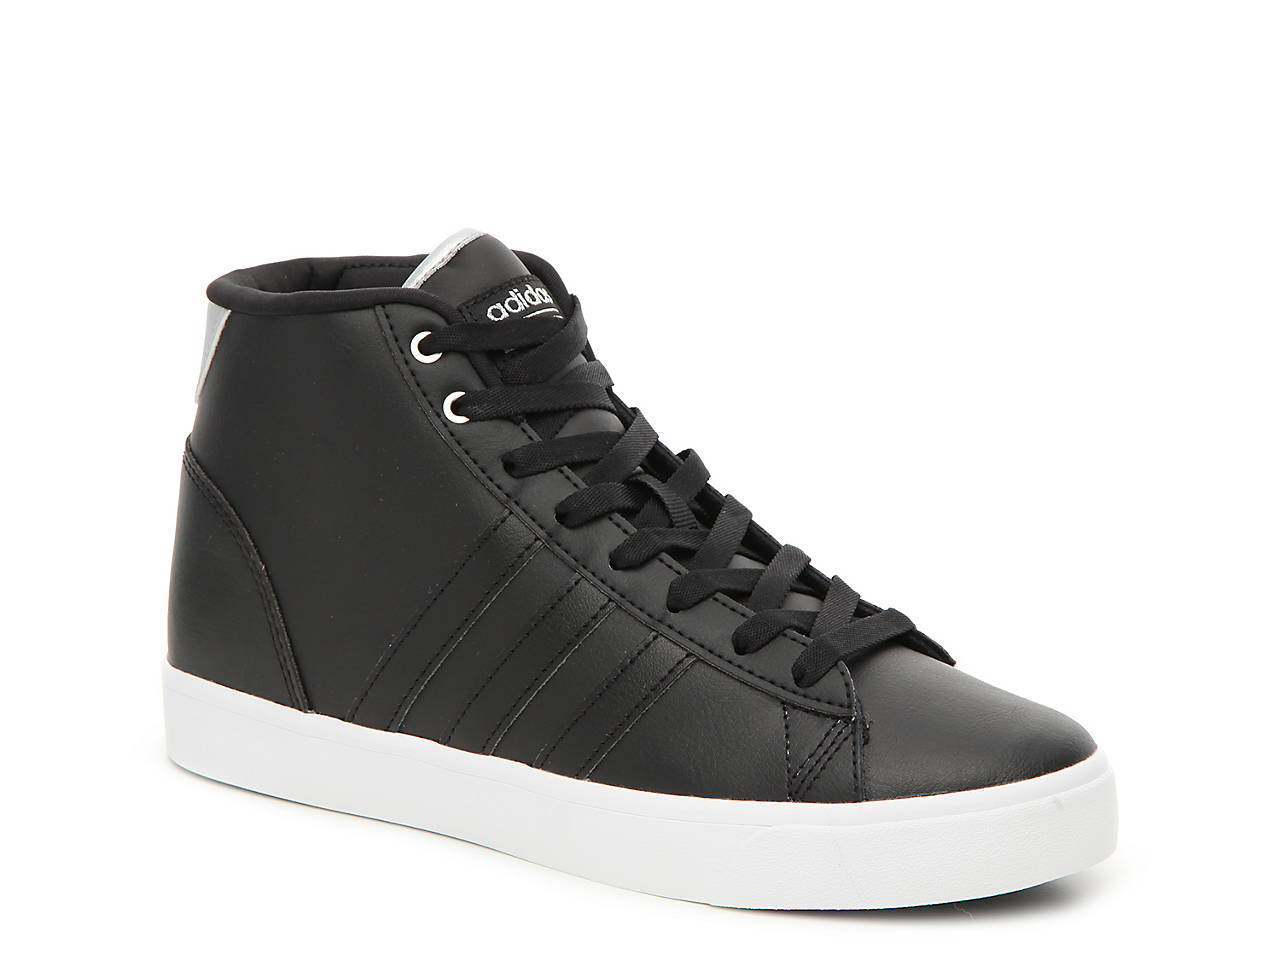 size 40 e1e5d 110a5 adidas Cloudfoam Daily QT High-Top Sneaker - Womens Womens S